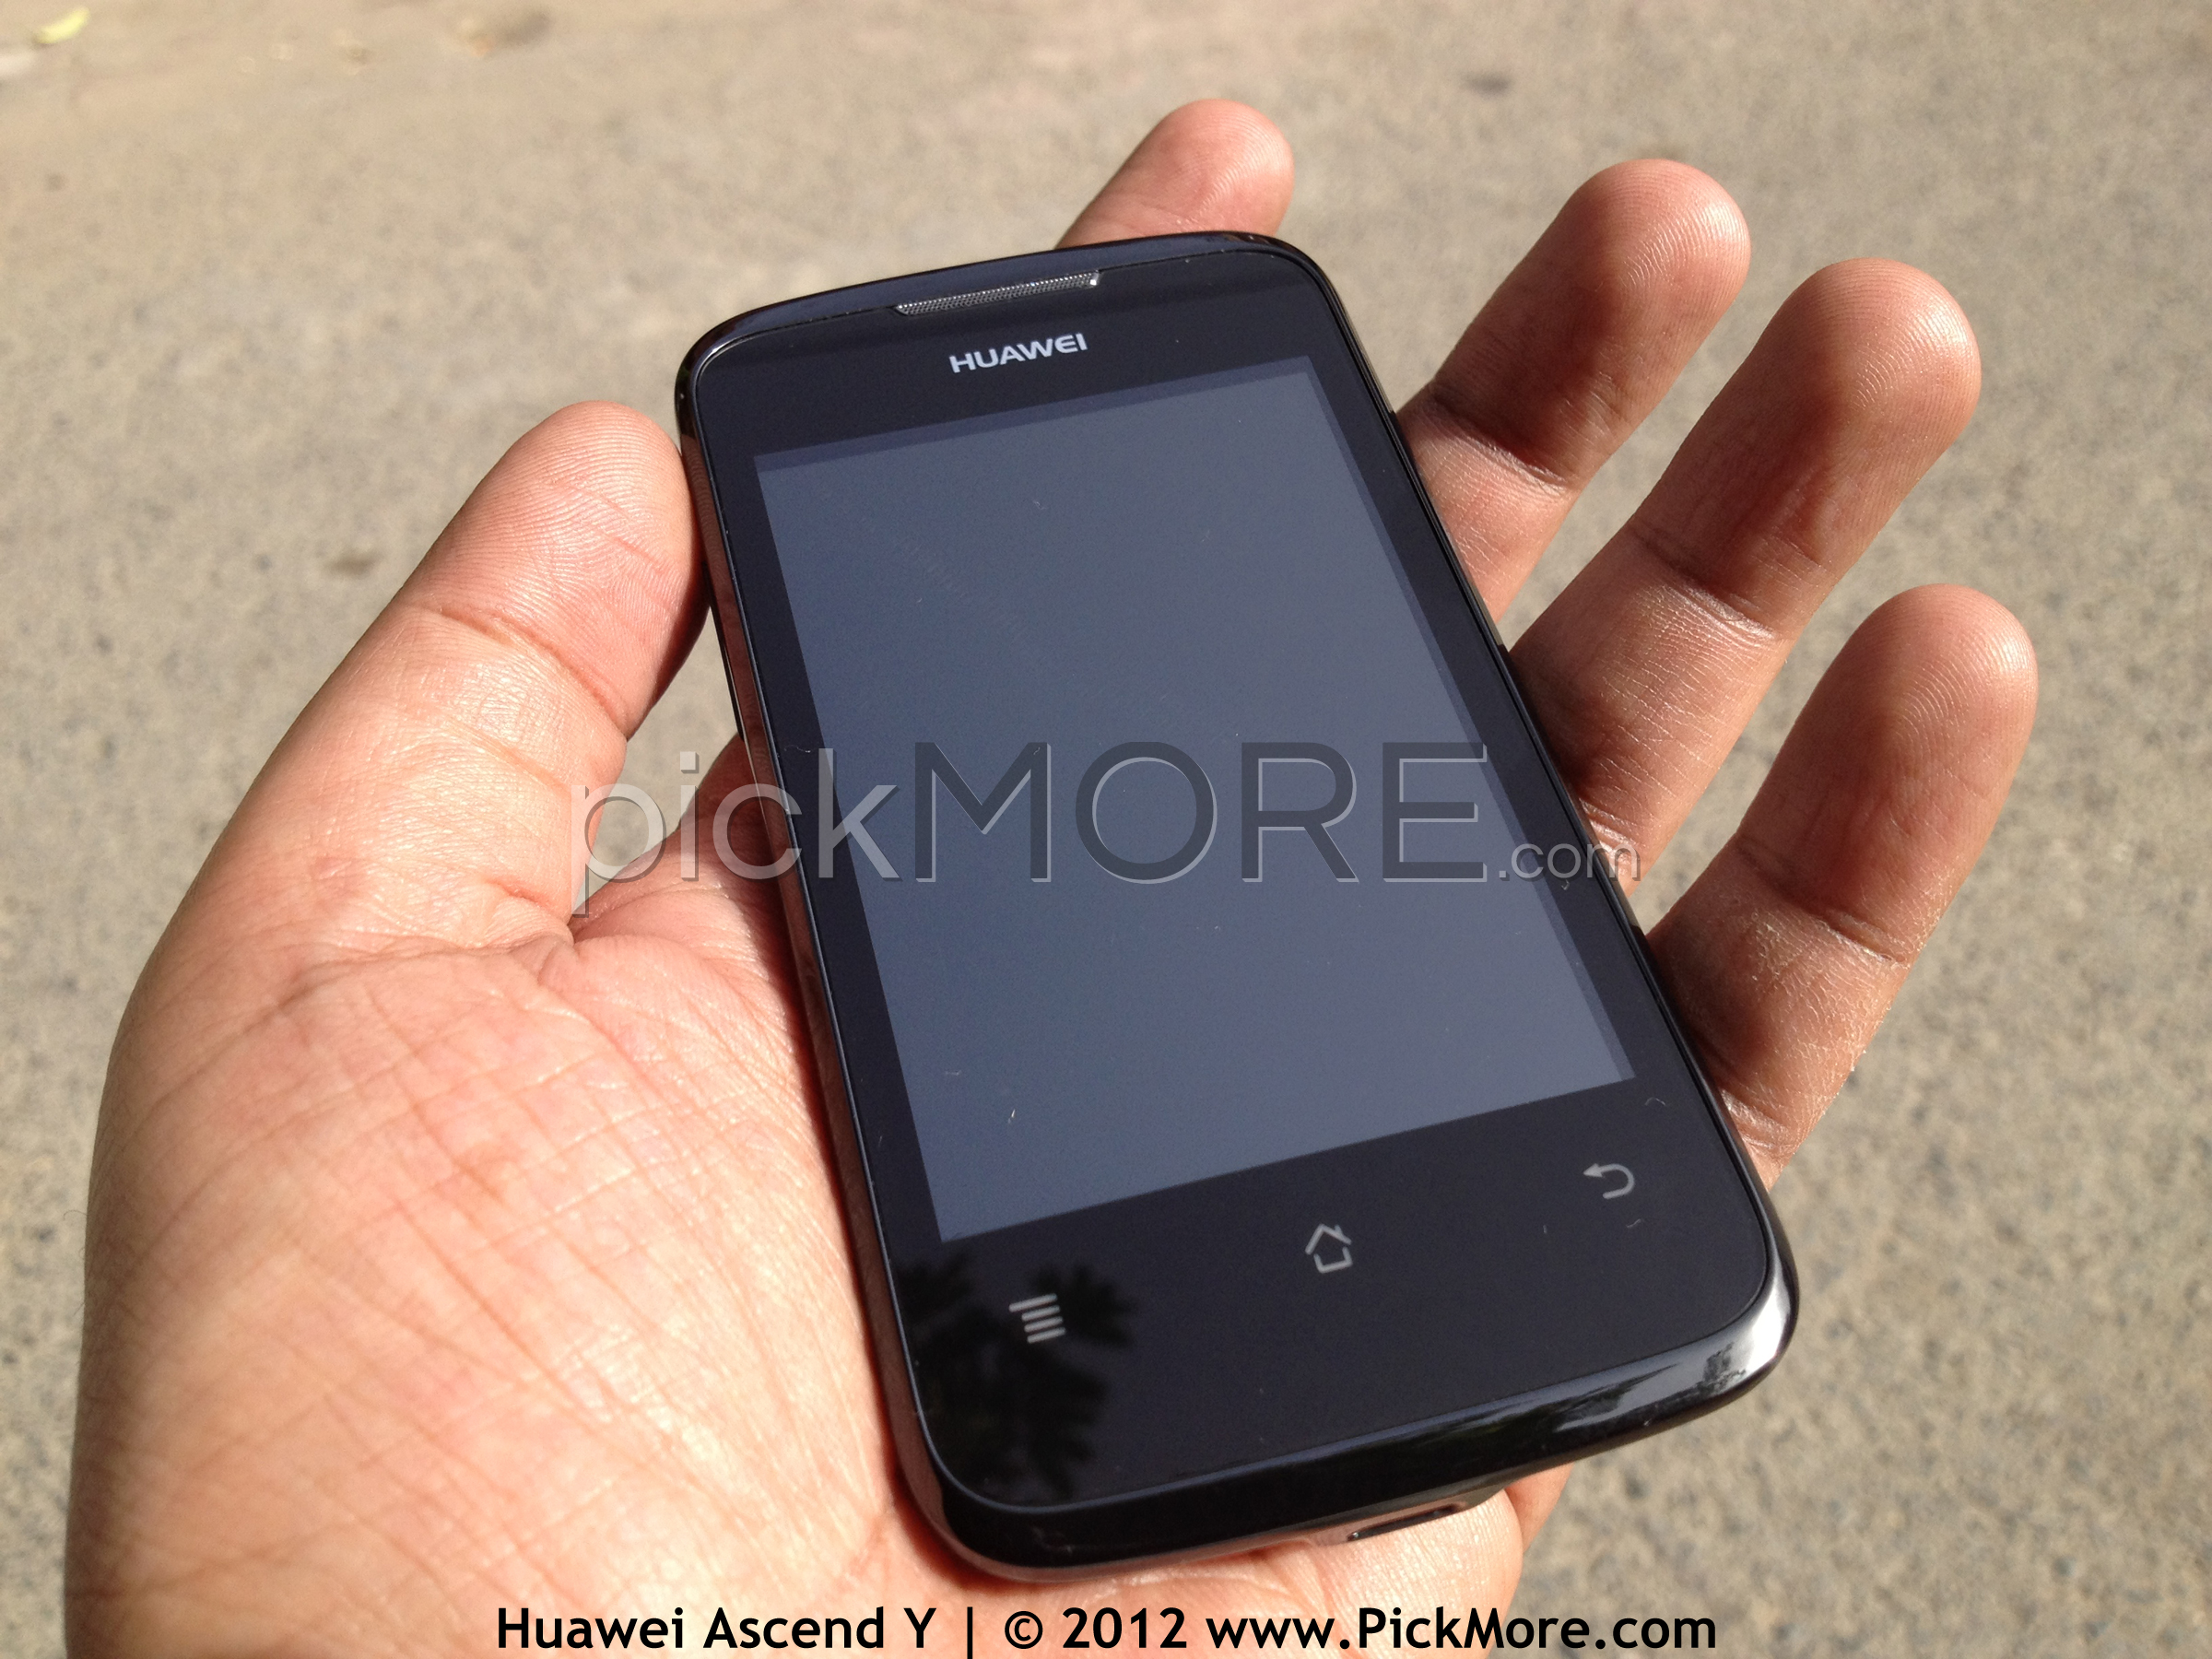 Hands on: Huawei Ascend Y 200 Mid-Range Android Smartphone